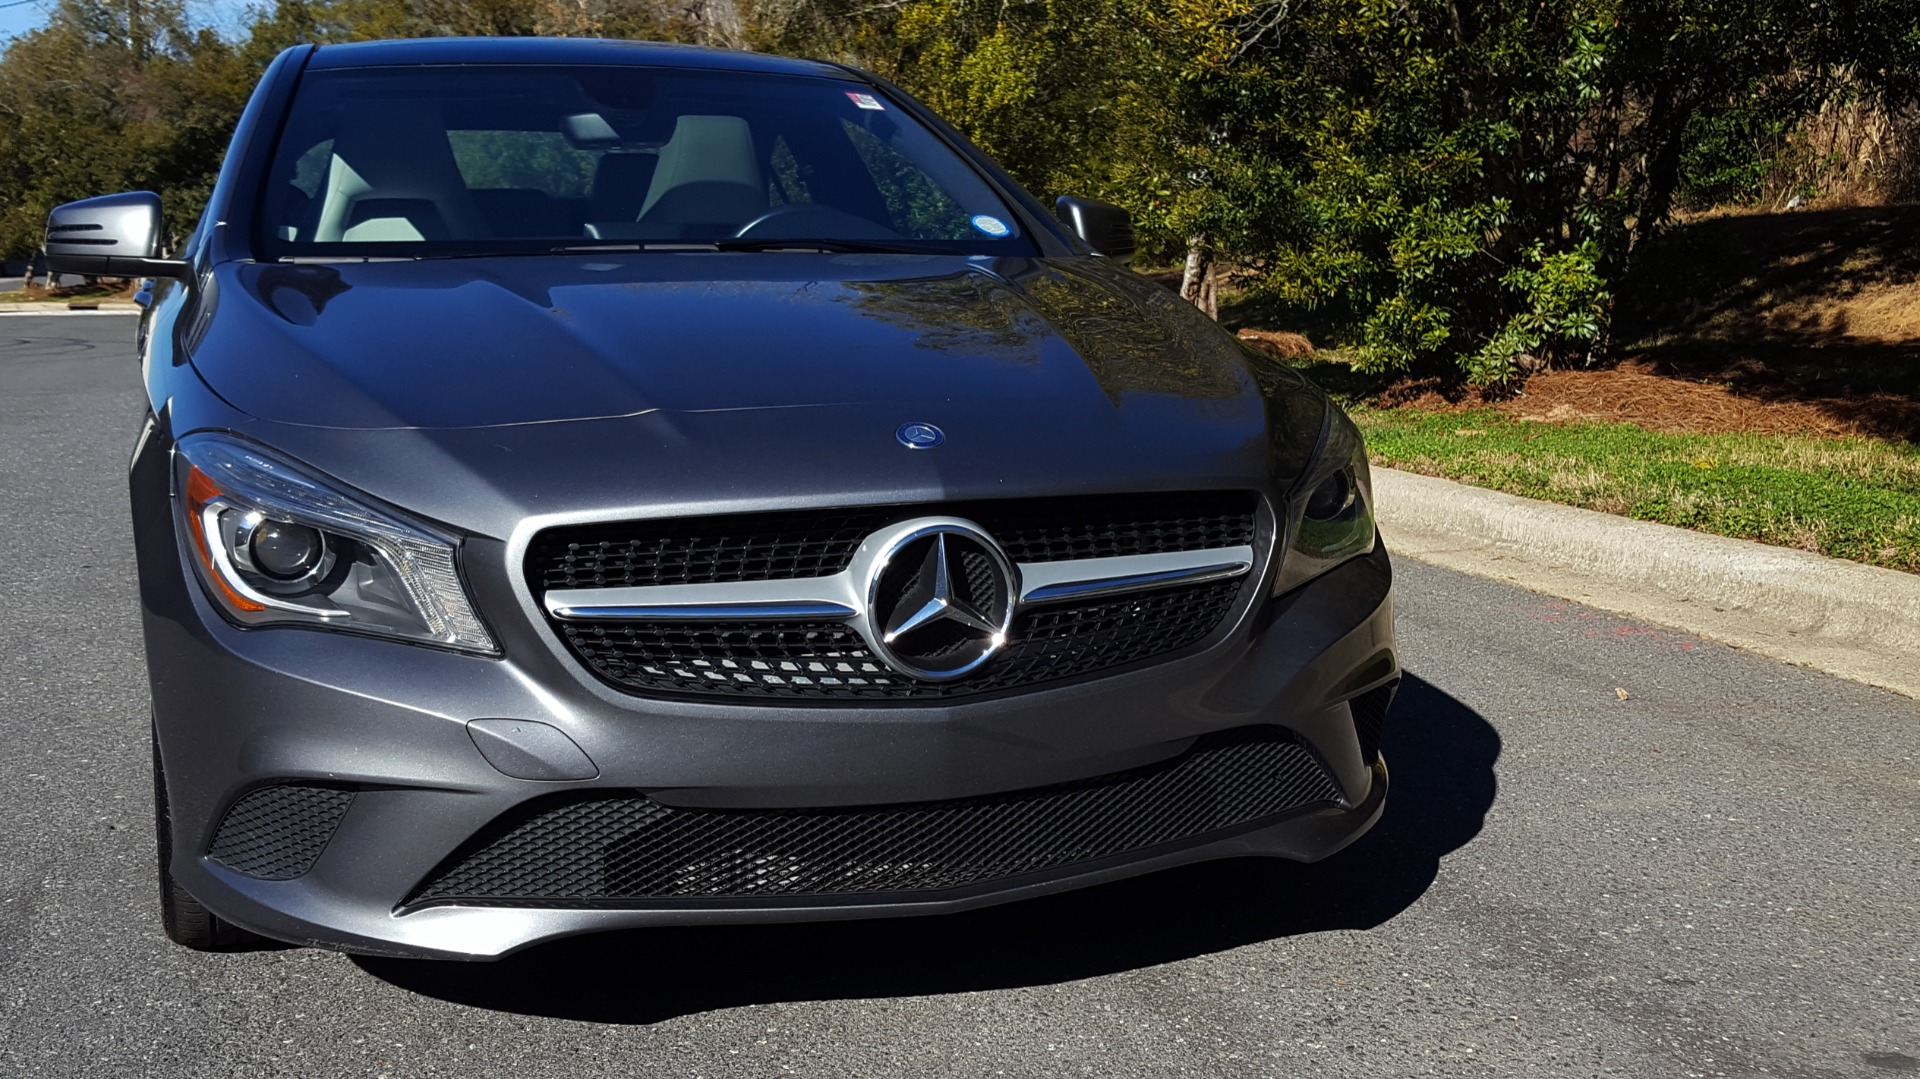 Used 2014 Mercedes-Benz CLA-CLASS CLA 250 / NAV / PANO-ROOF / BLIND SPOT ASSIST / XENON HEADLIGHTS for sale $19,995 at Formula Imports in Charlotte NC 28227 5